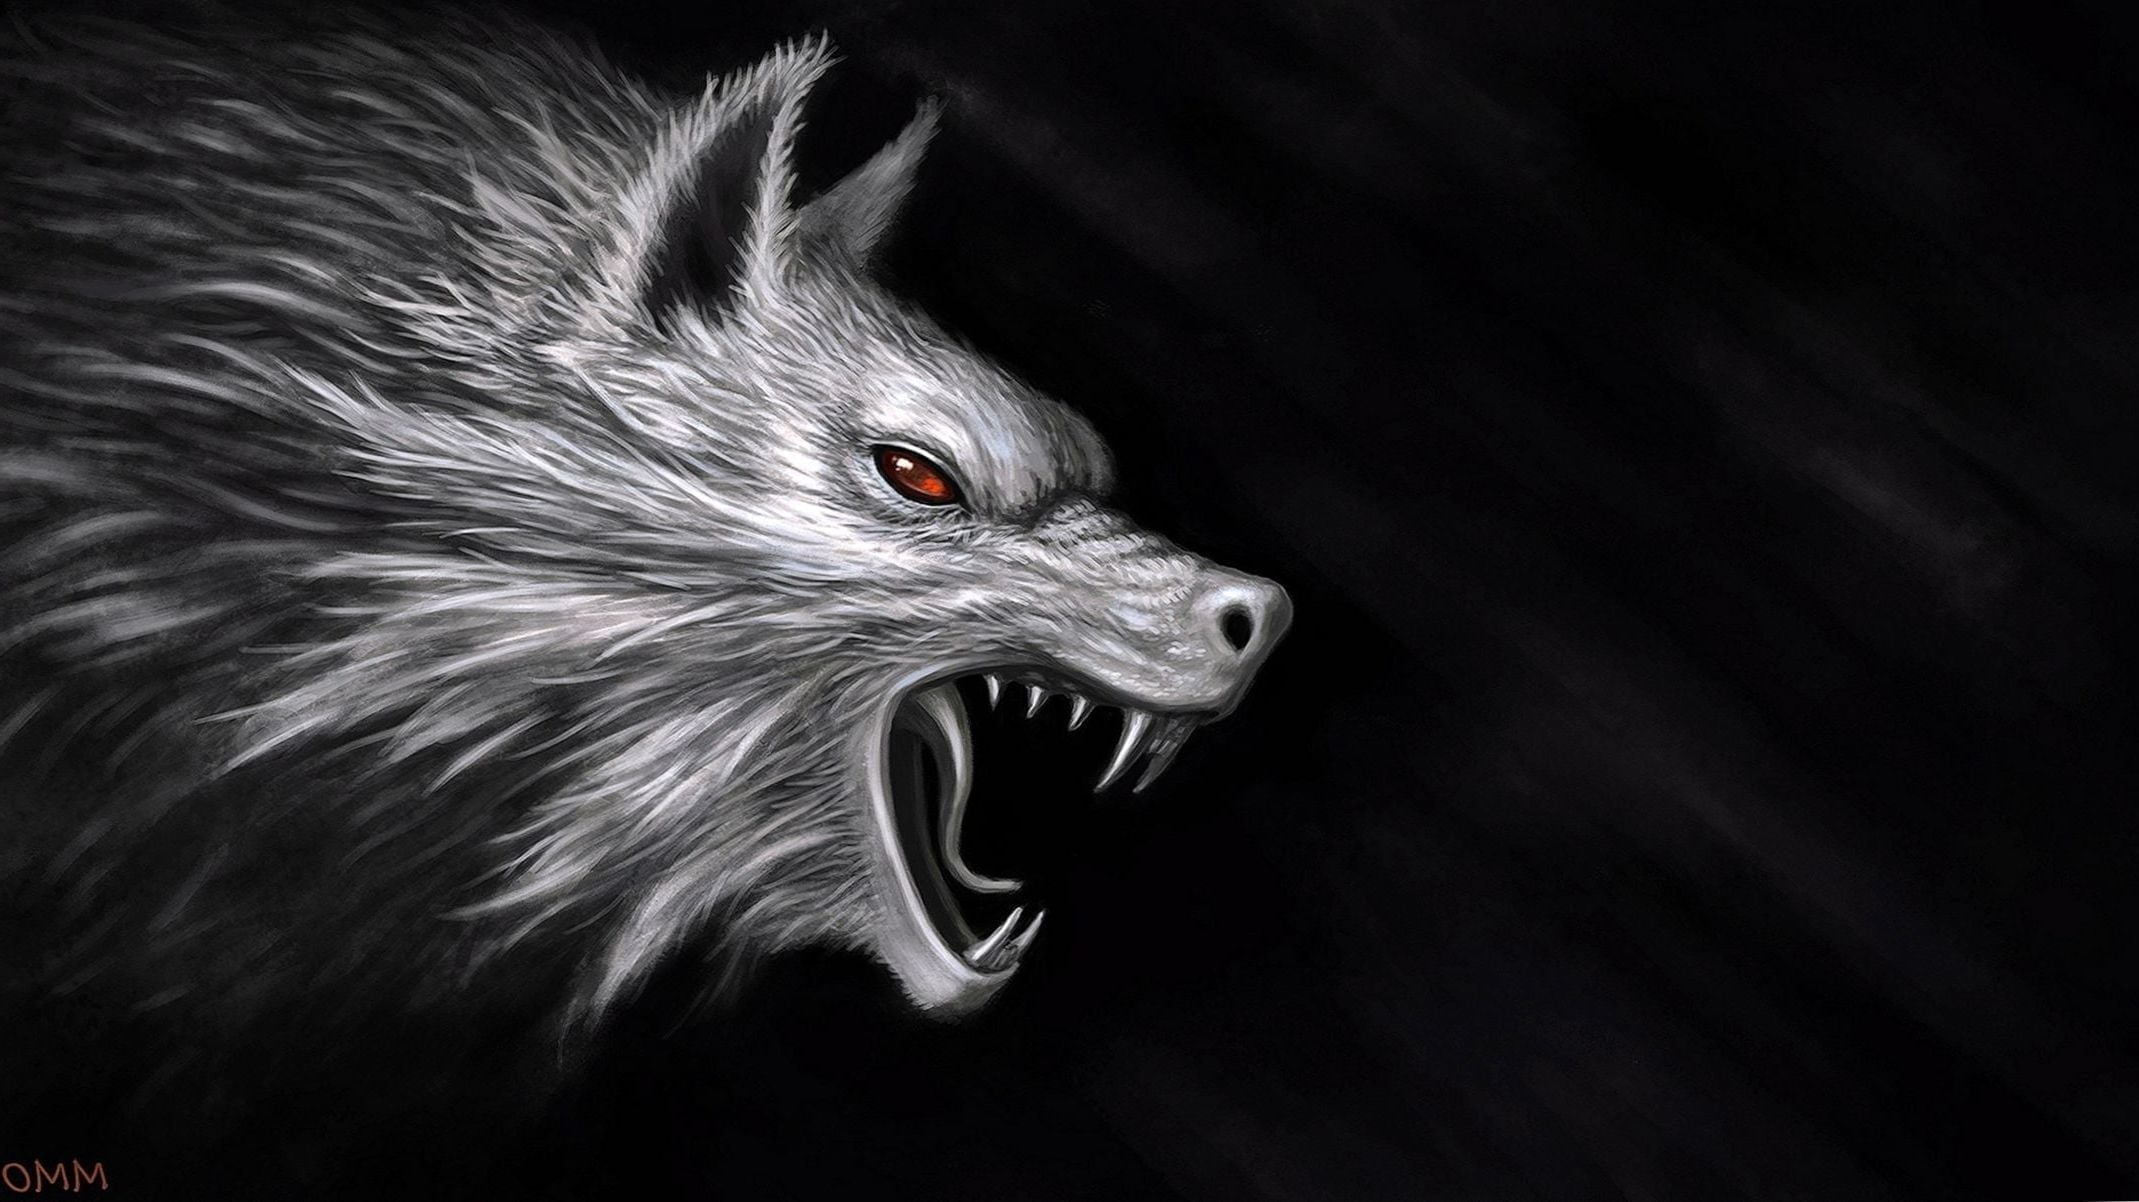 wallpaper hd 4k,facial expression,black and white,snout,fang,tooth